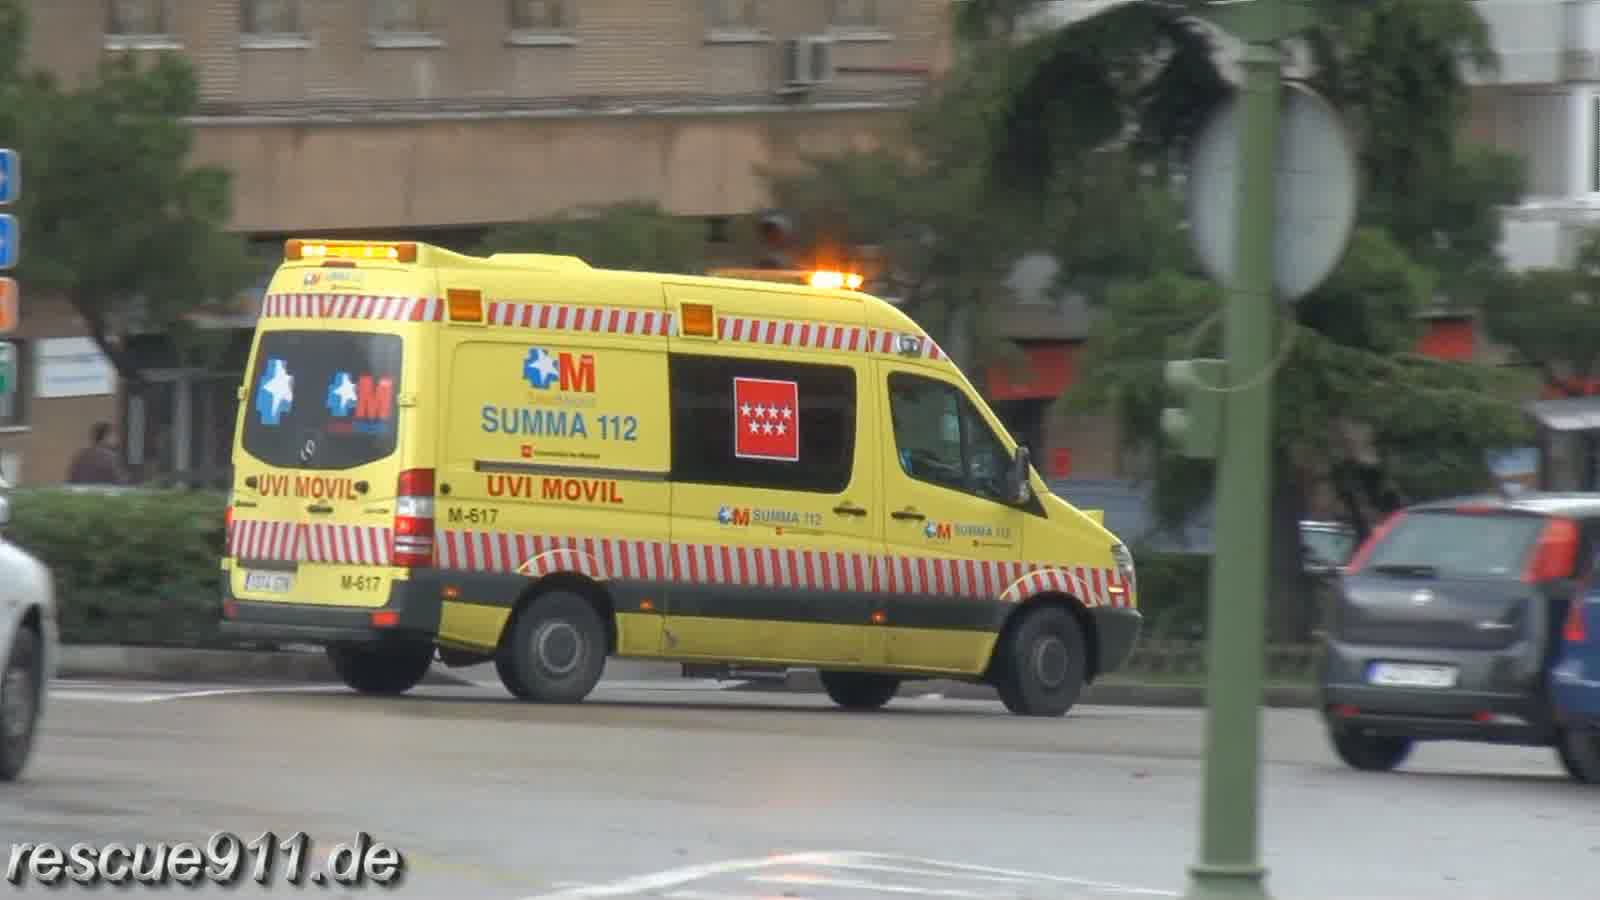 Ambulancia SUMMA 112 Madrid (collection) (stream)